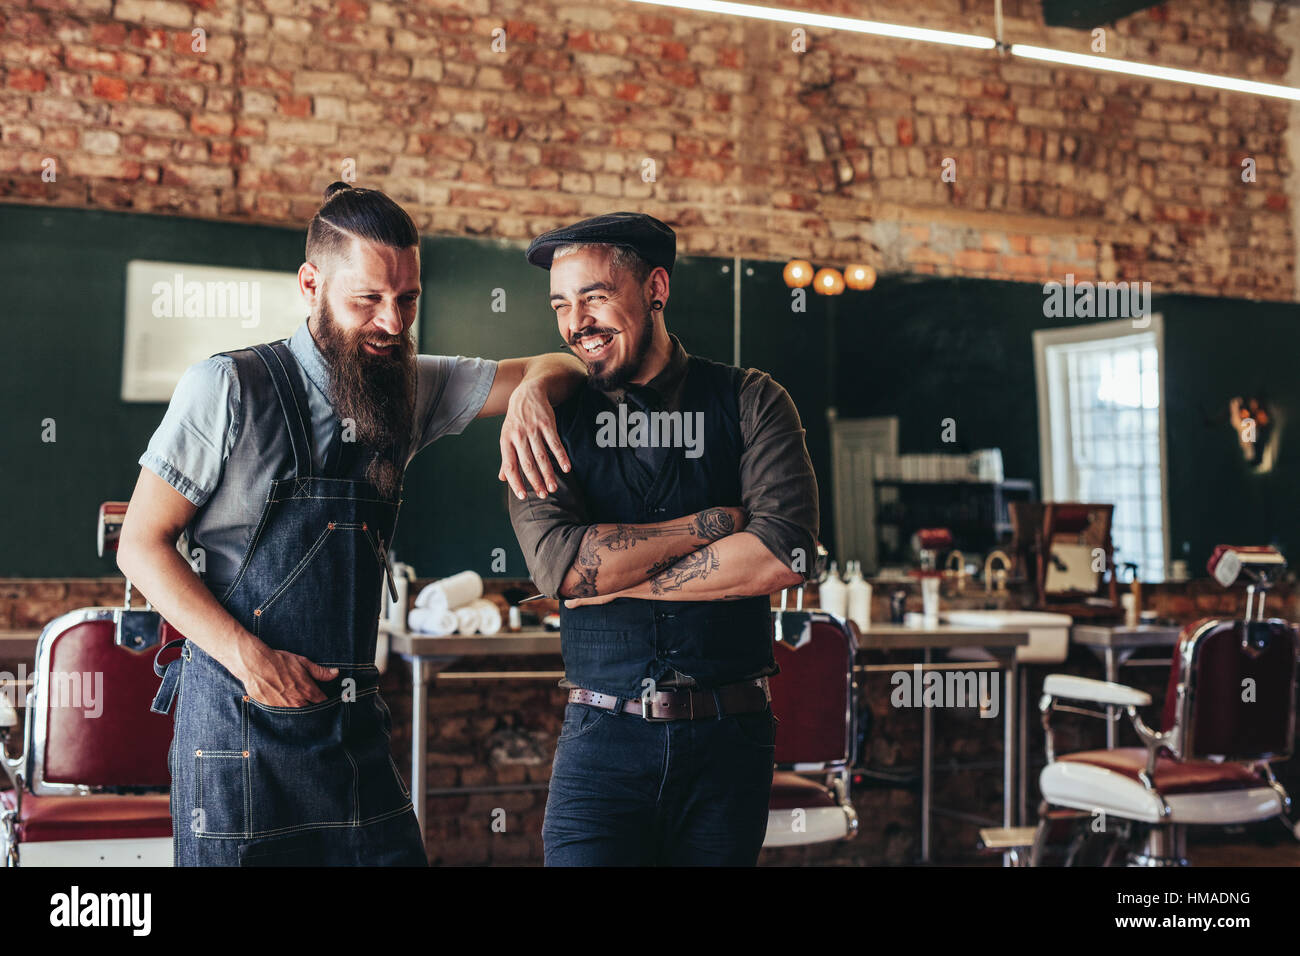 Shot of hairdresser with a man standing at barbershop. Hairstylist and client at salon - Stock Image